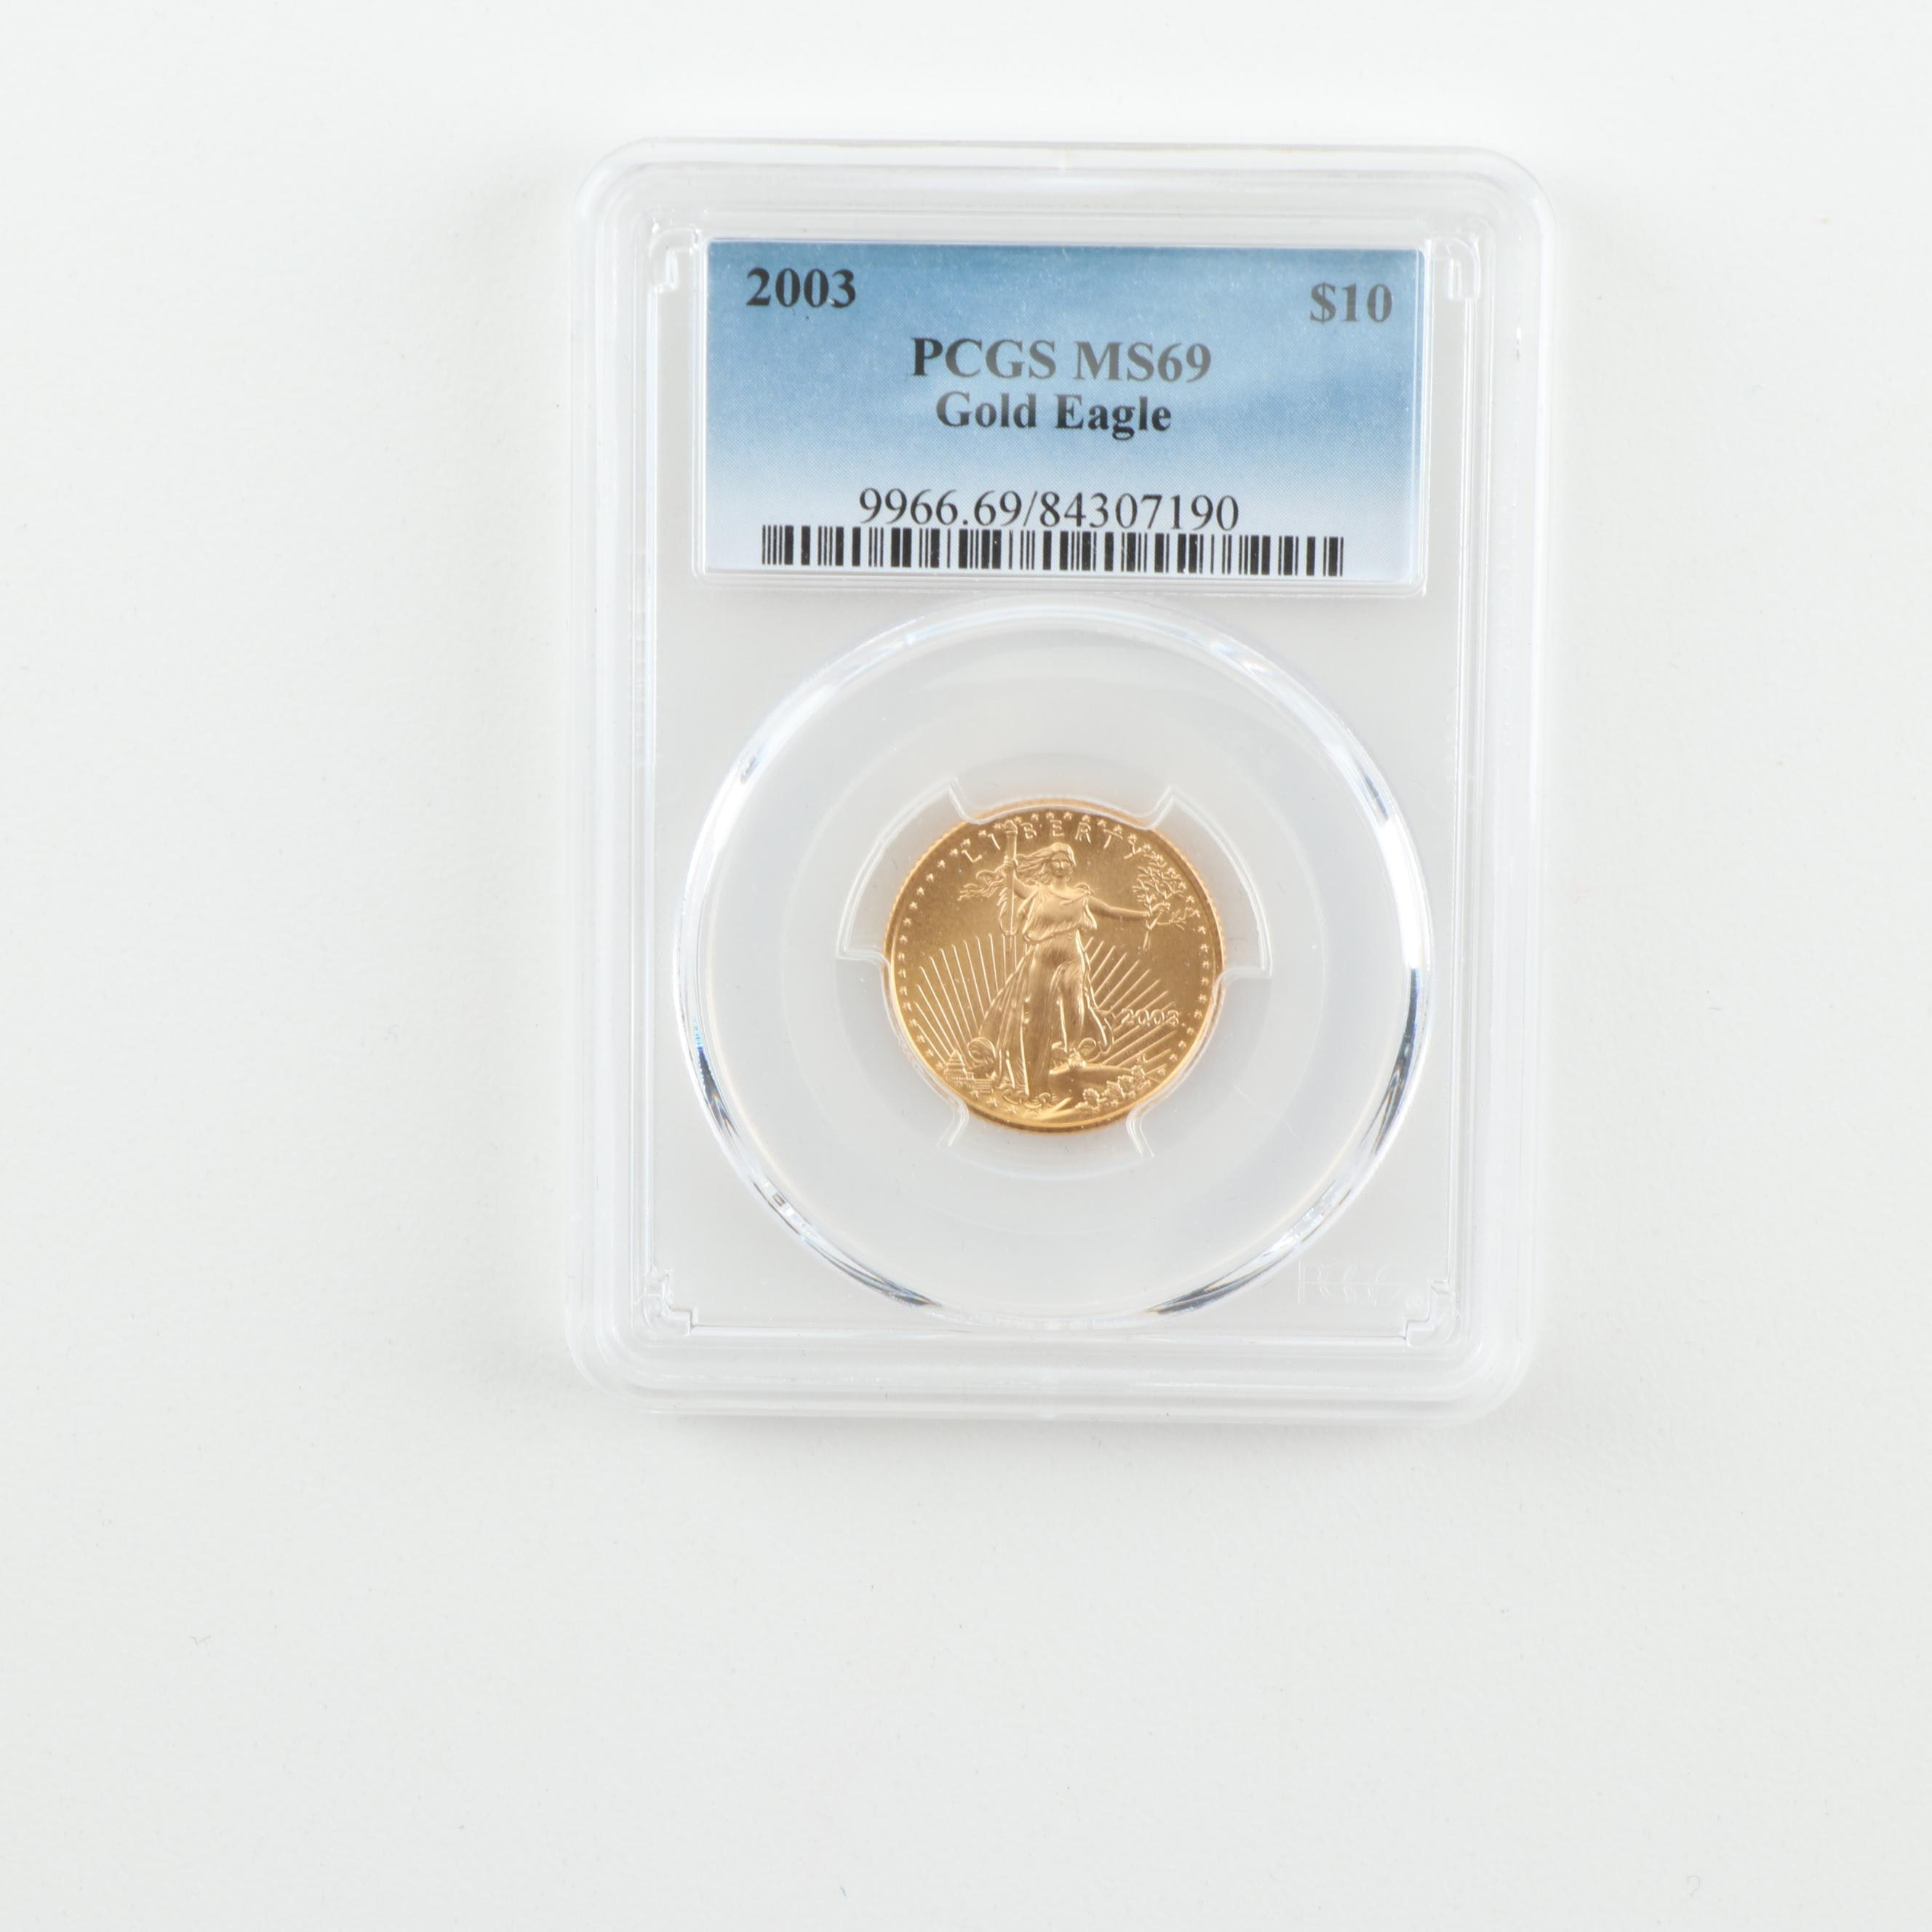 PCGS Graded MS69 2003 $10 Gold Eagle Coin